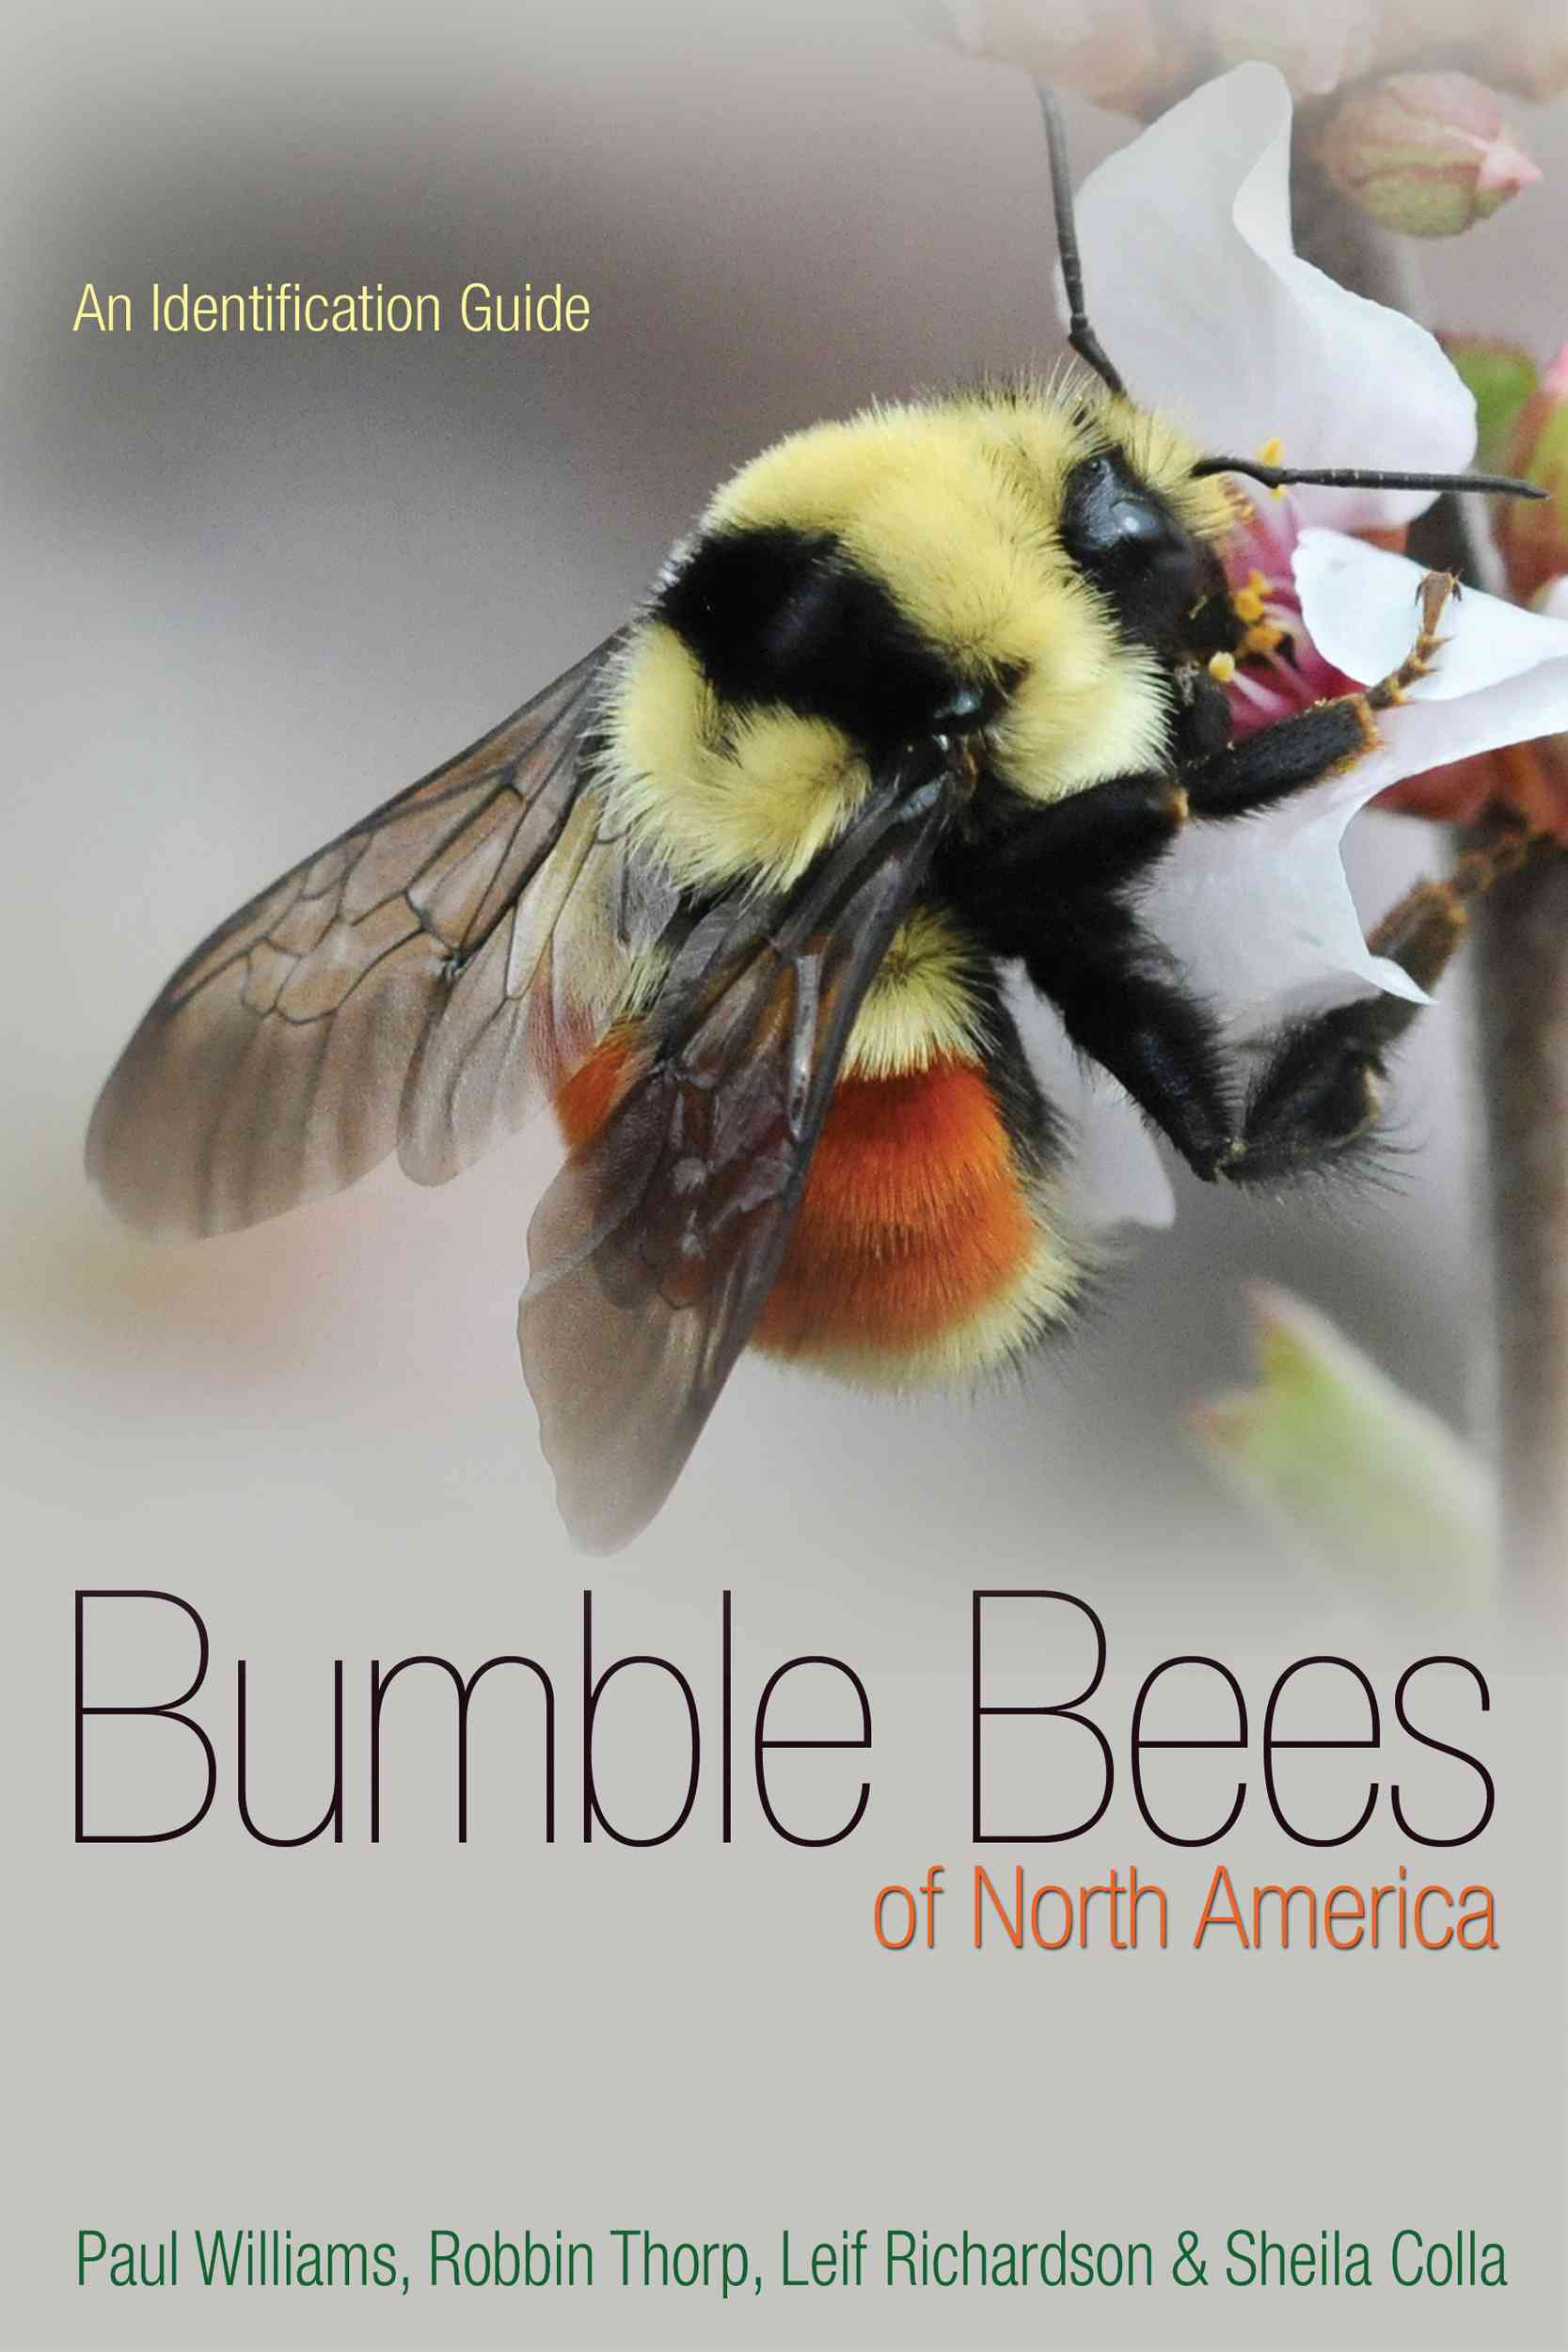 Bumble Bees of North America By Williams, Paul H./ Thorp, Robbin W./ Richardson, Leif L./ Colla, Sheila R.